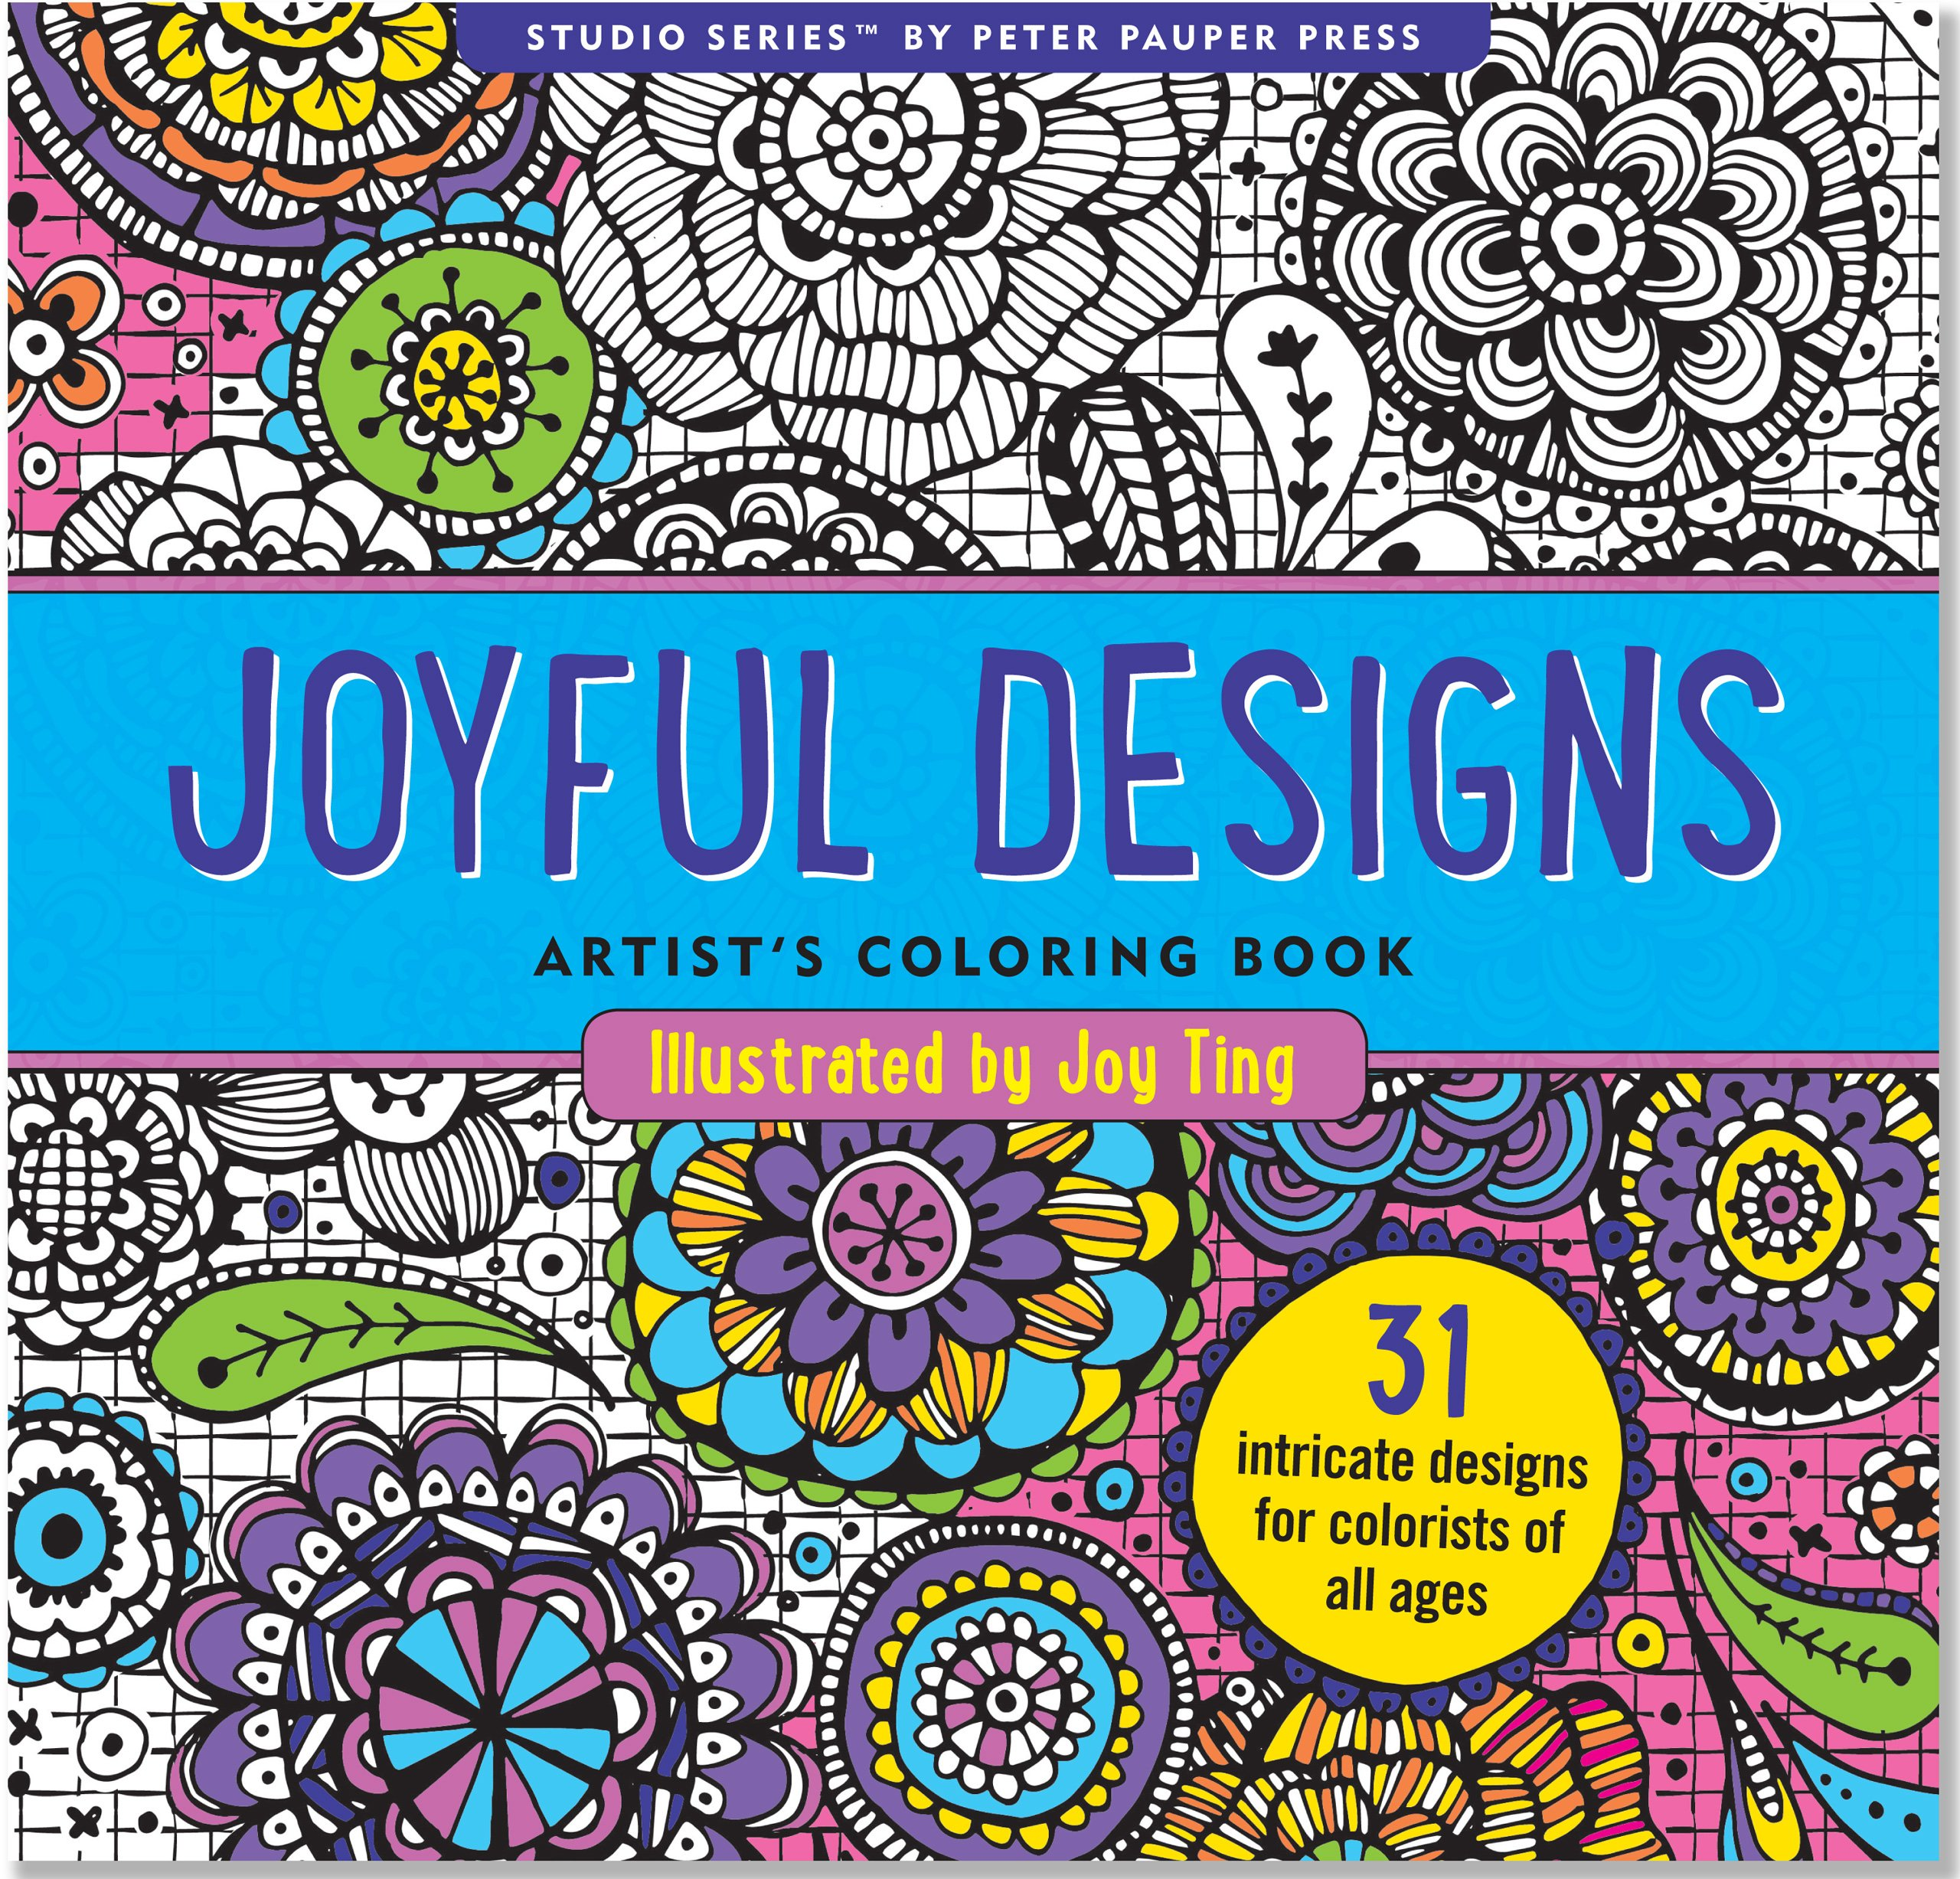 joyful designs adult coloring book by joy ting - Color Books For Adults